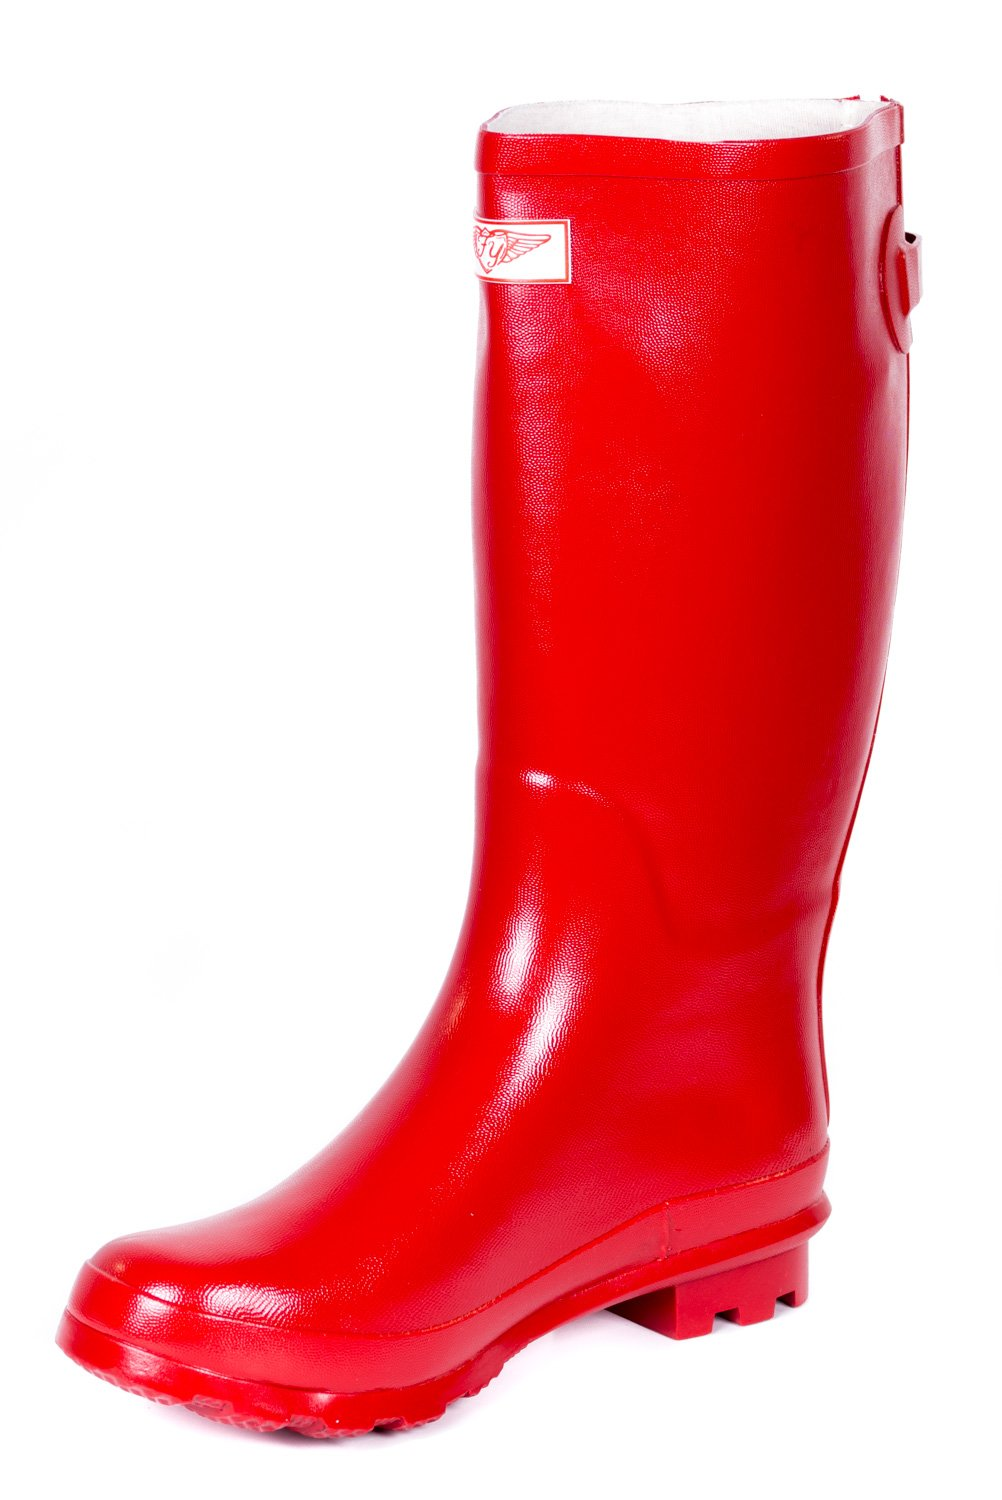 Women Classic Rubber Rain Boots /w Zipper Designs by Forever Young B00GMBGDYS 11 B(M) US|Red